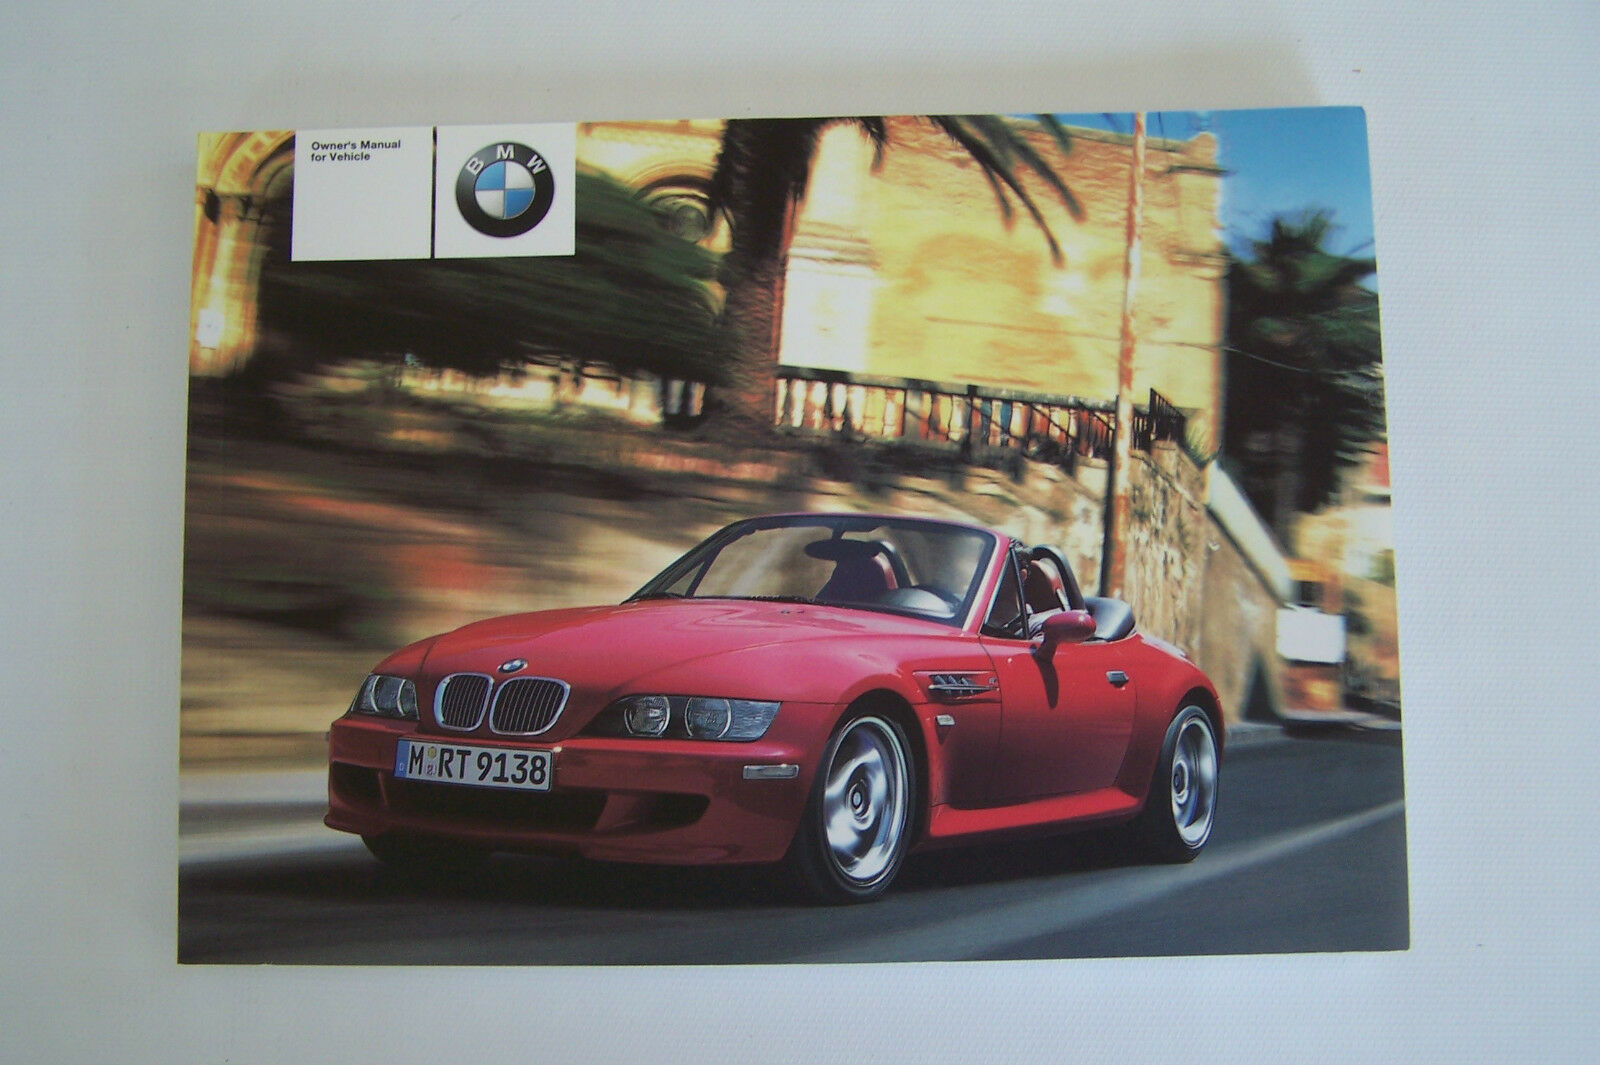 2002 bmw z3 m roadster coupe Owners Manual E36 parts 3 Series new original m  z3 1 of 6FREE Shipping See More